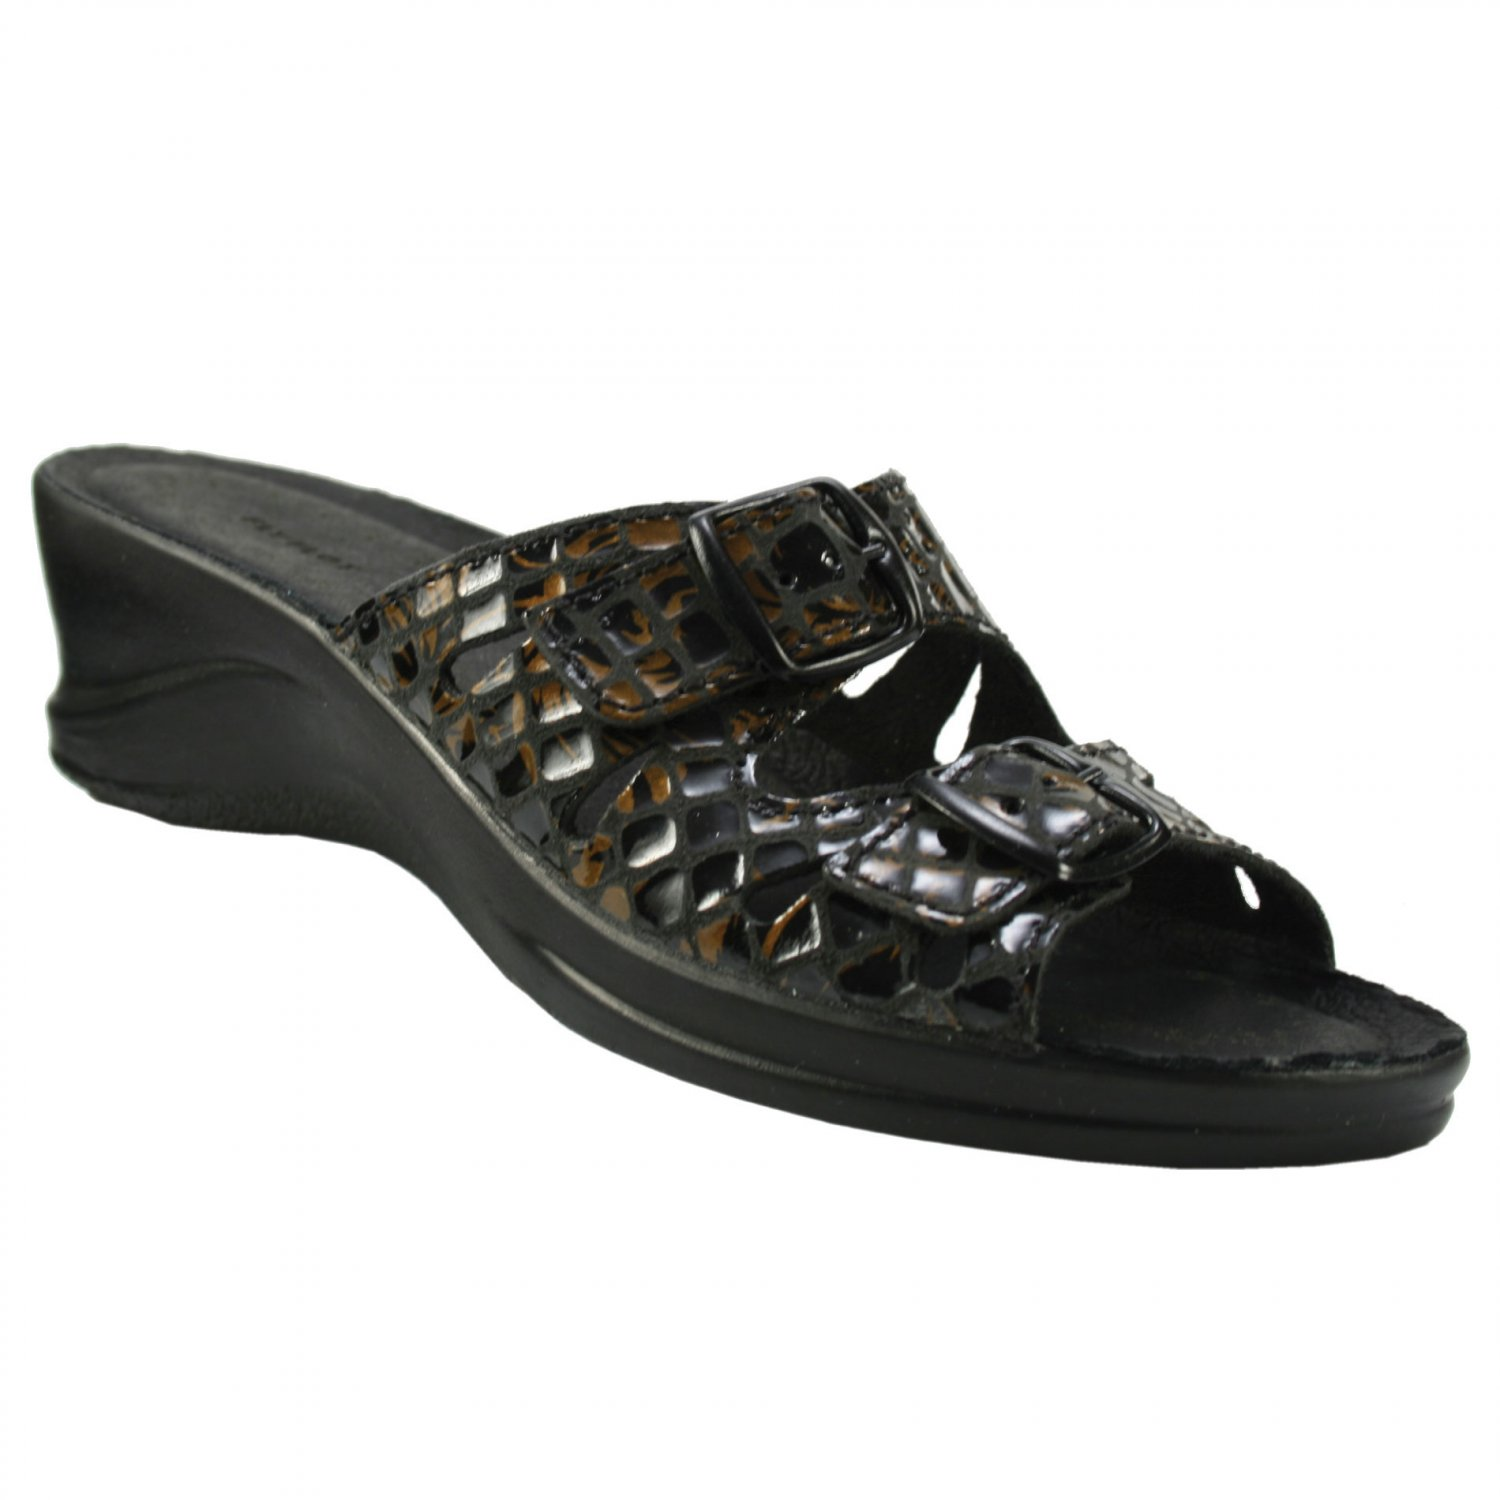 FLY FLOT JAZZ Slippers Shoes All Sizes & Colors $59.99